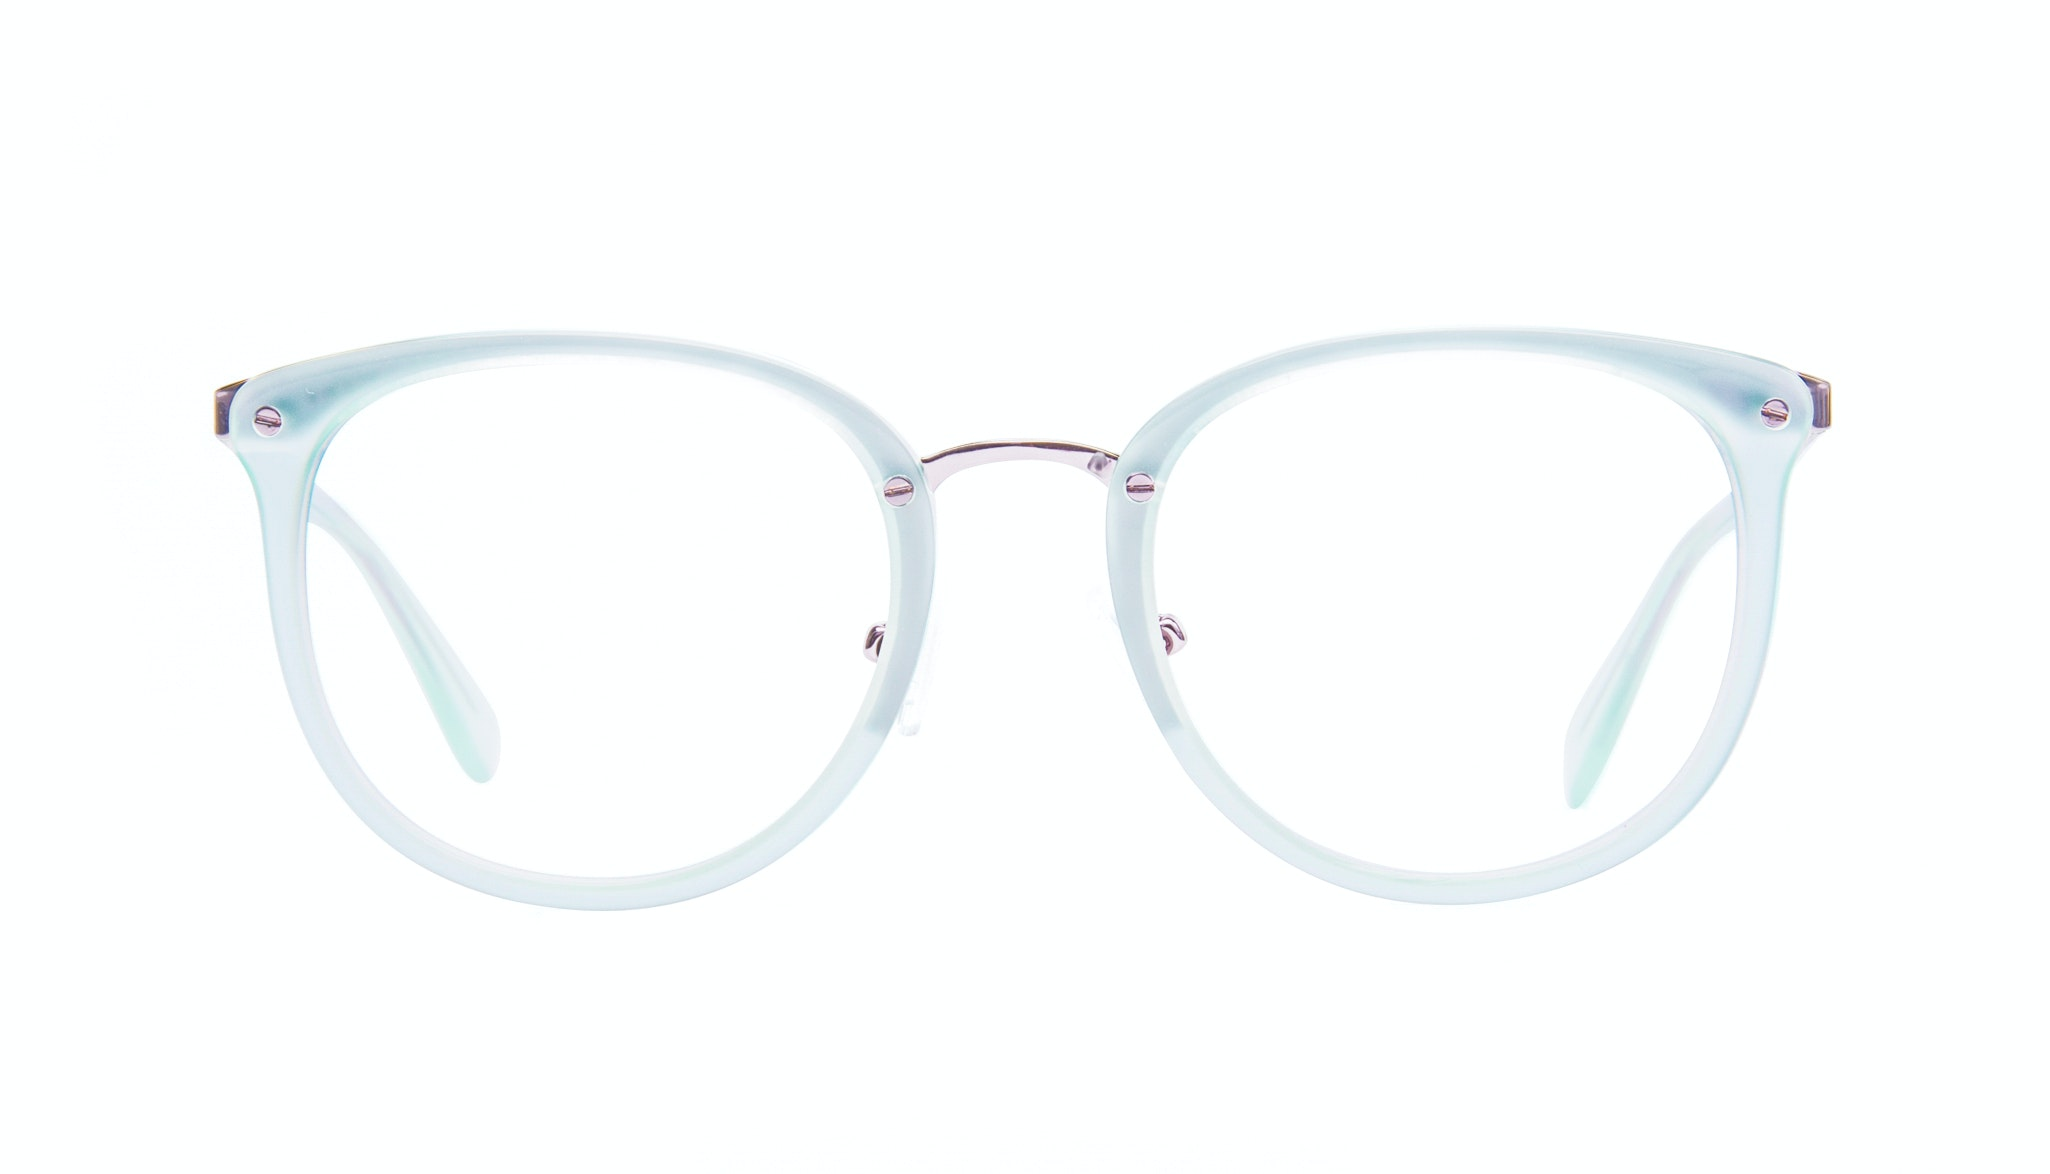 Affordable Fashion Glasses Round Eyeglasses Women Amaze Mint